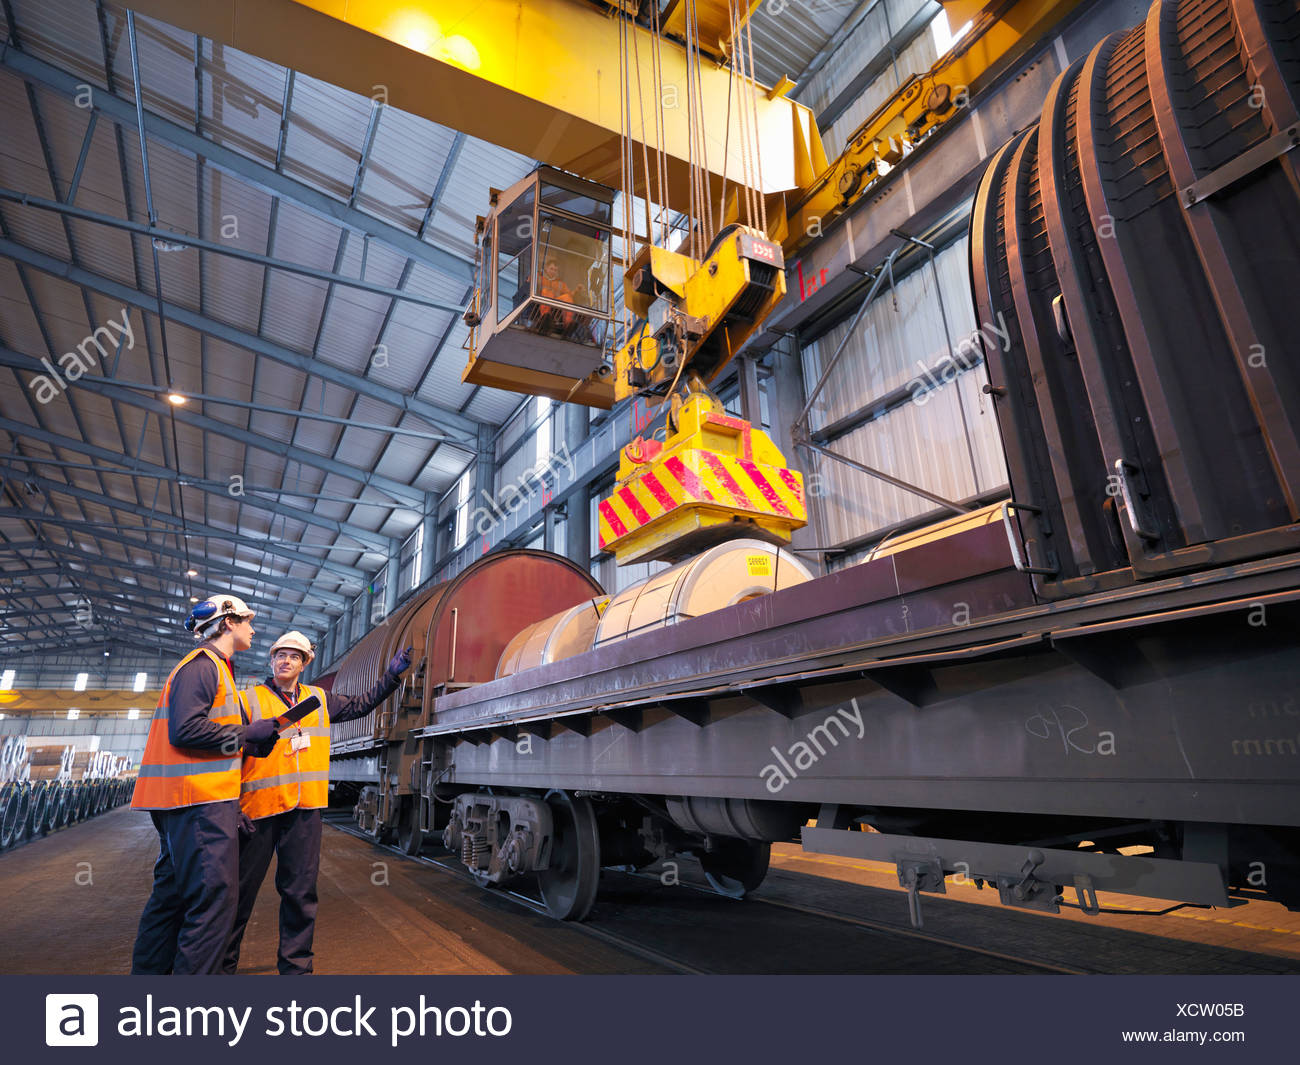 Port Workers Loading Cargo On To Train - Stock Image